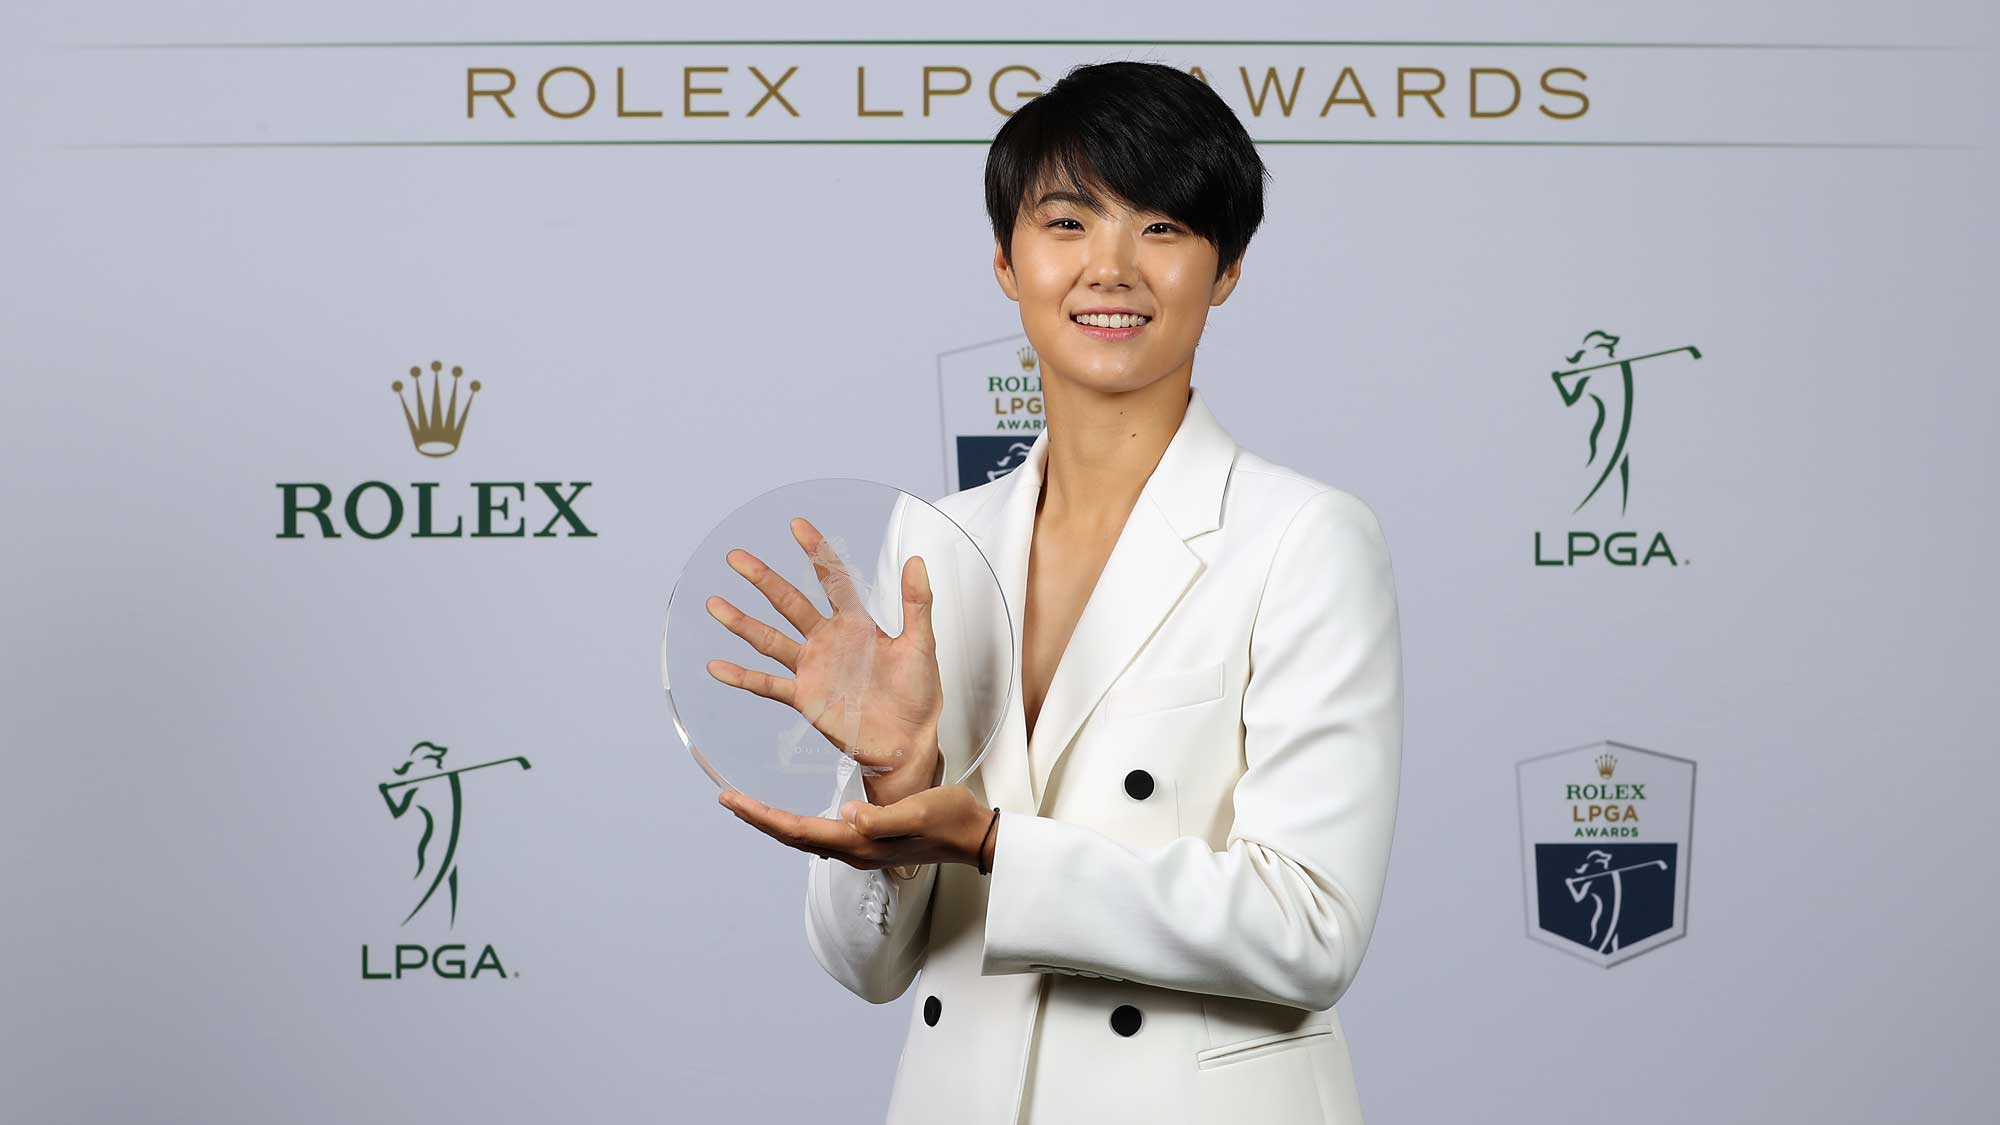 Louise Suggs Rolex Rookie of the Year award recipient Sung Hyun Park of Korea poses for a portrait during the LPGA Rolex Players Awards at The Ritz-Carlton Golf Resort